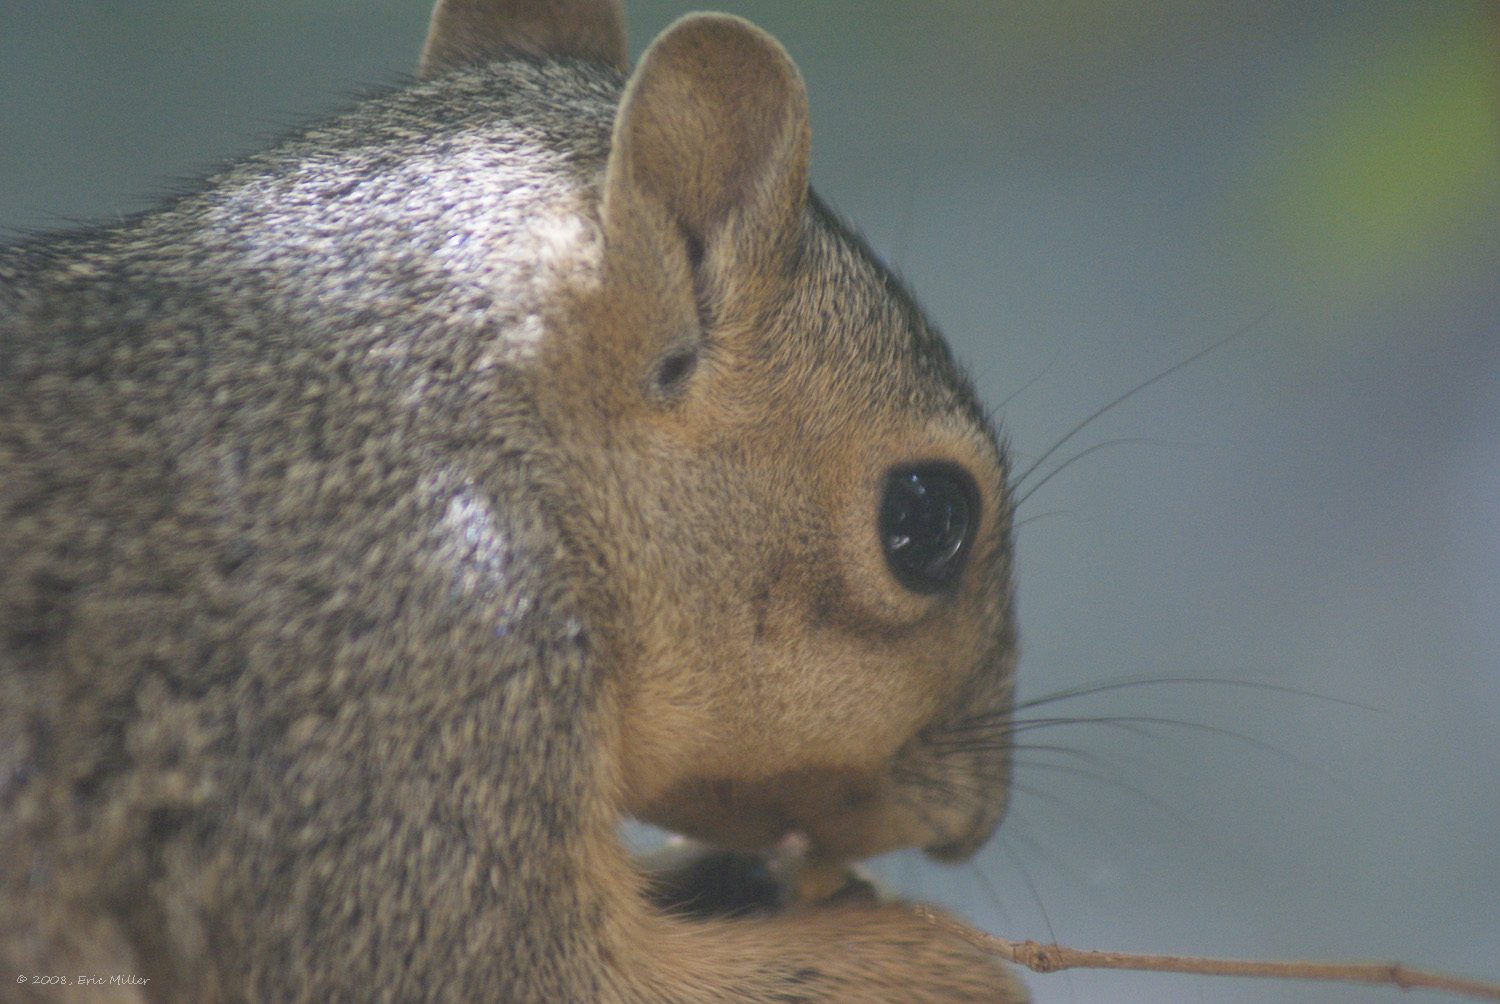 2008/squirrels/DSC00193.jpg